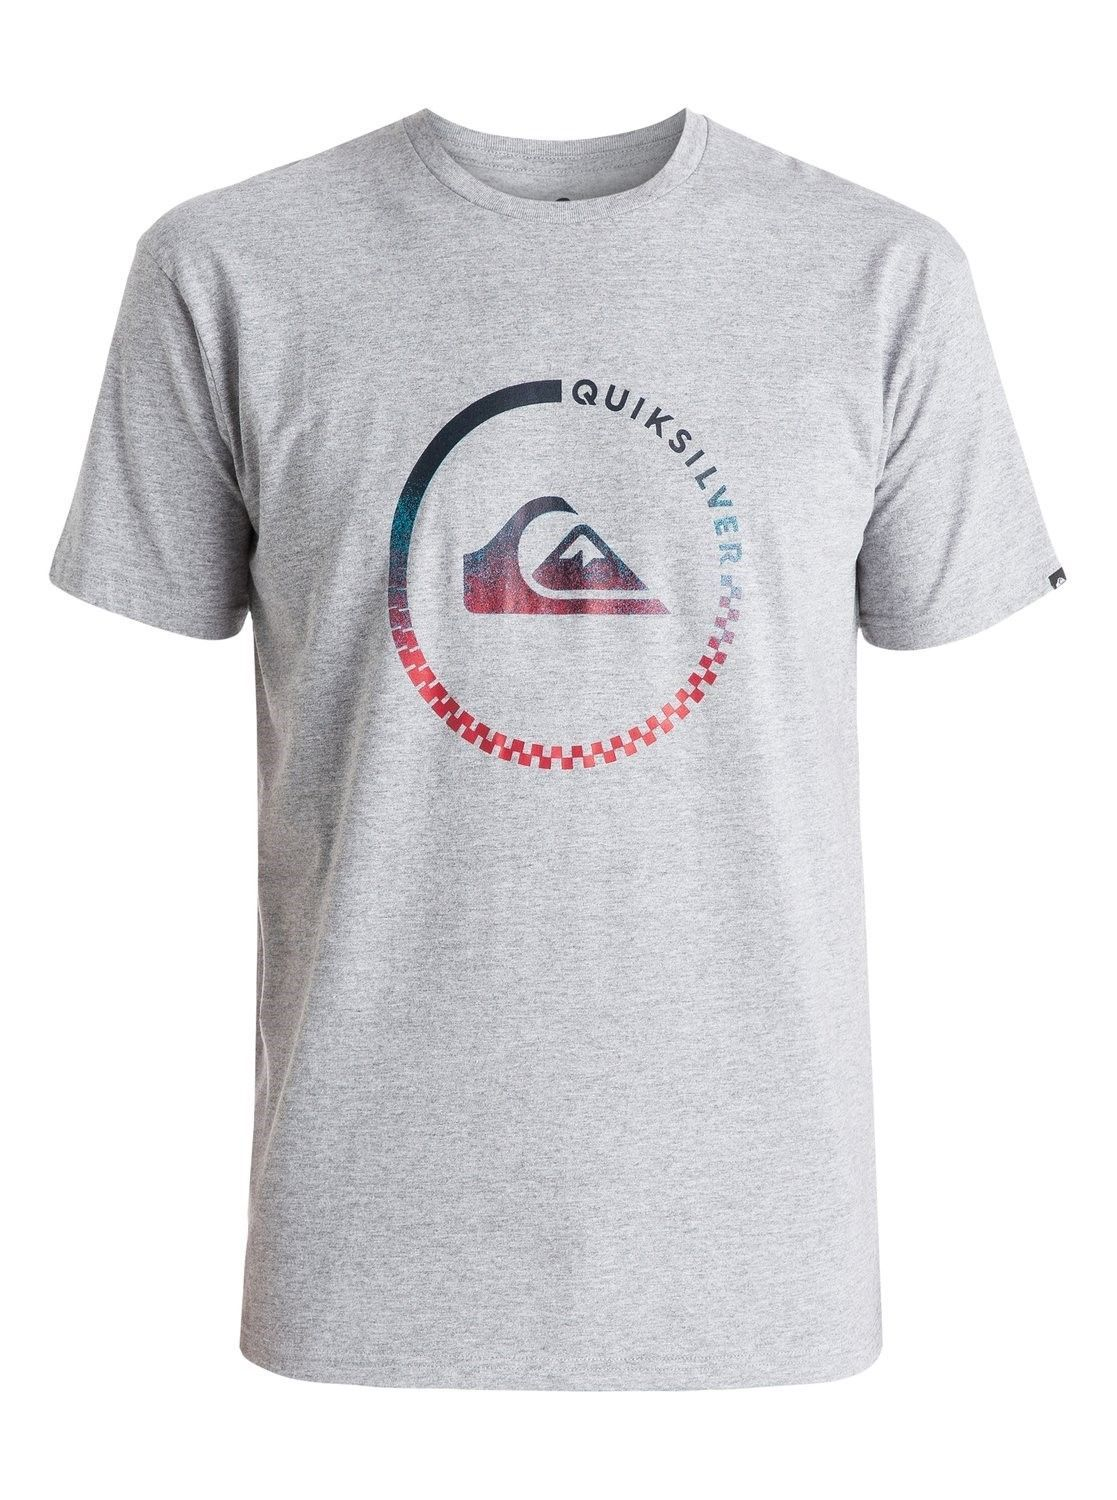 Quiksilver Men's Tee Shirt Surfing Beach Casual Grey Active Check T-Shirt